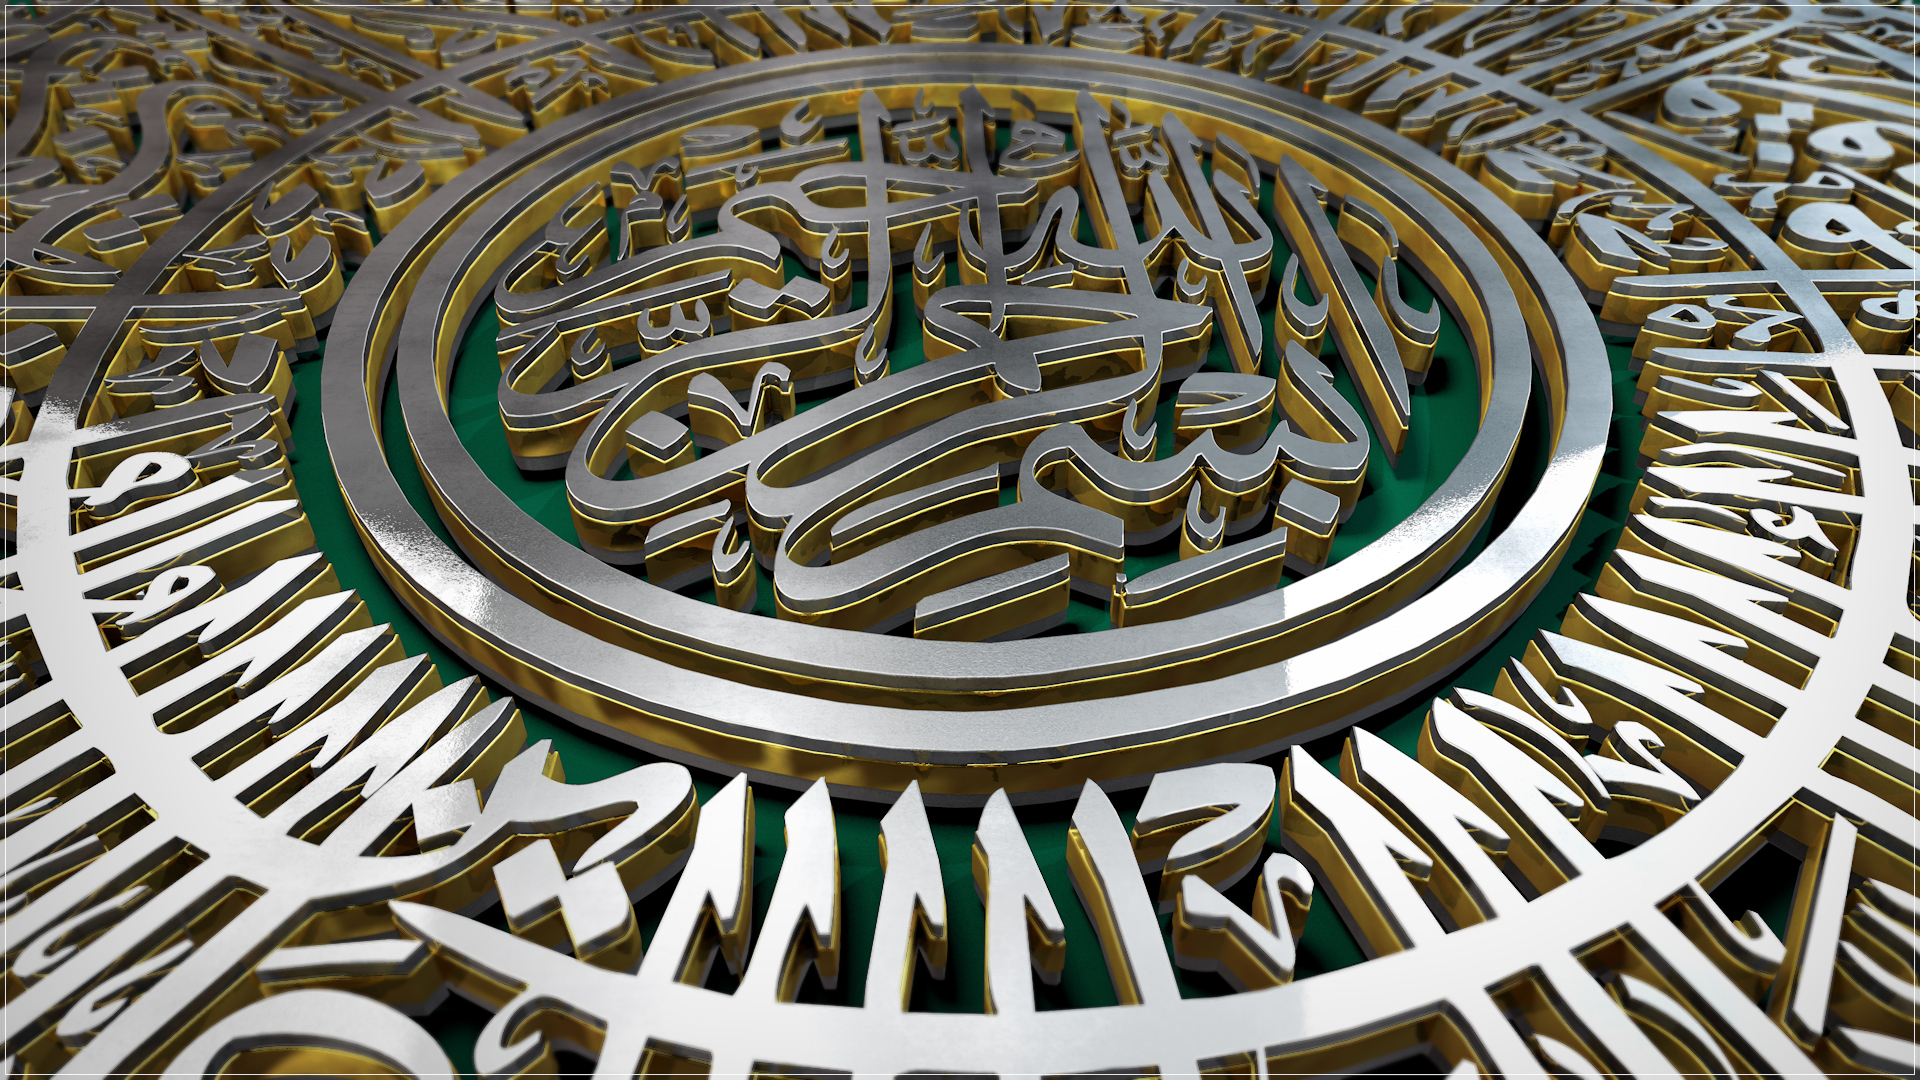 Arab Islamic 3d Calligraphy By Iskander71 On Deviantart